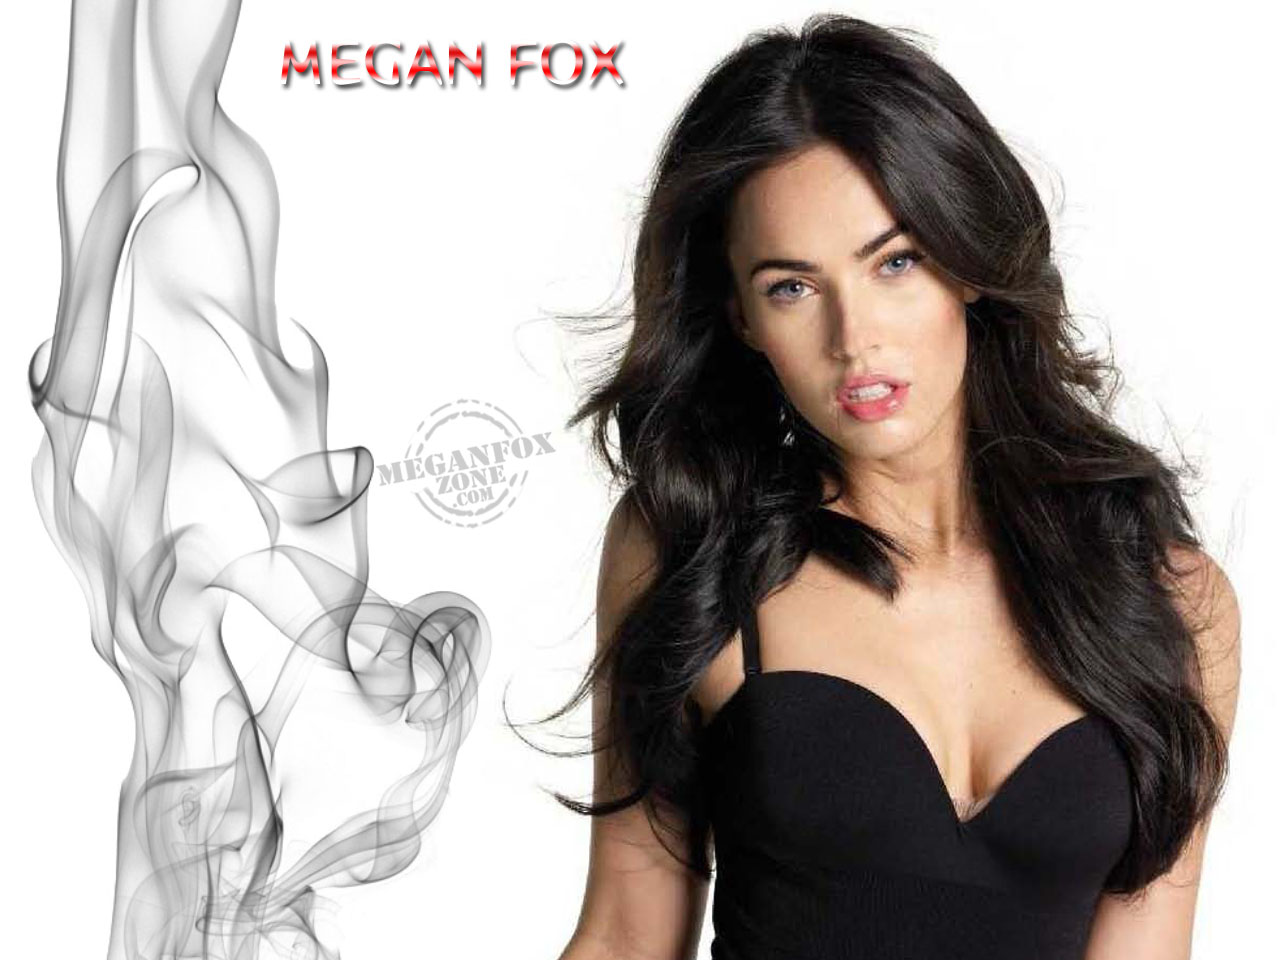 1280x960px megan fox wallpaper hd - wallpapersafari